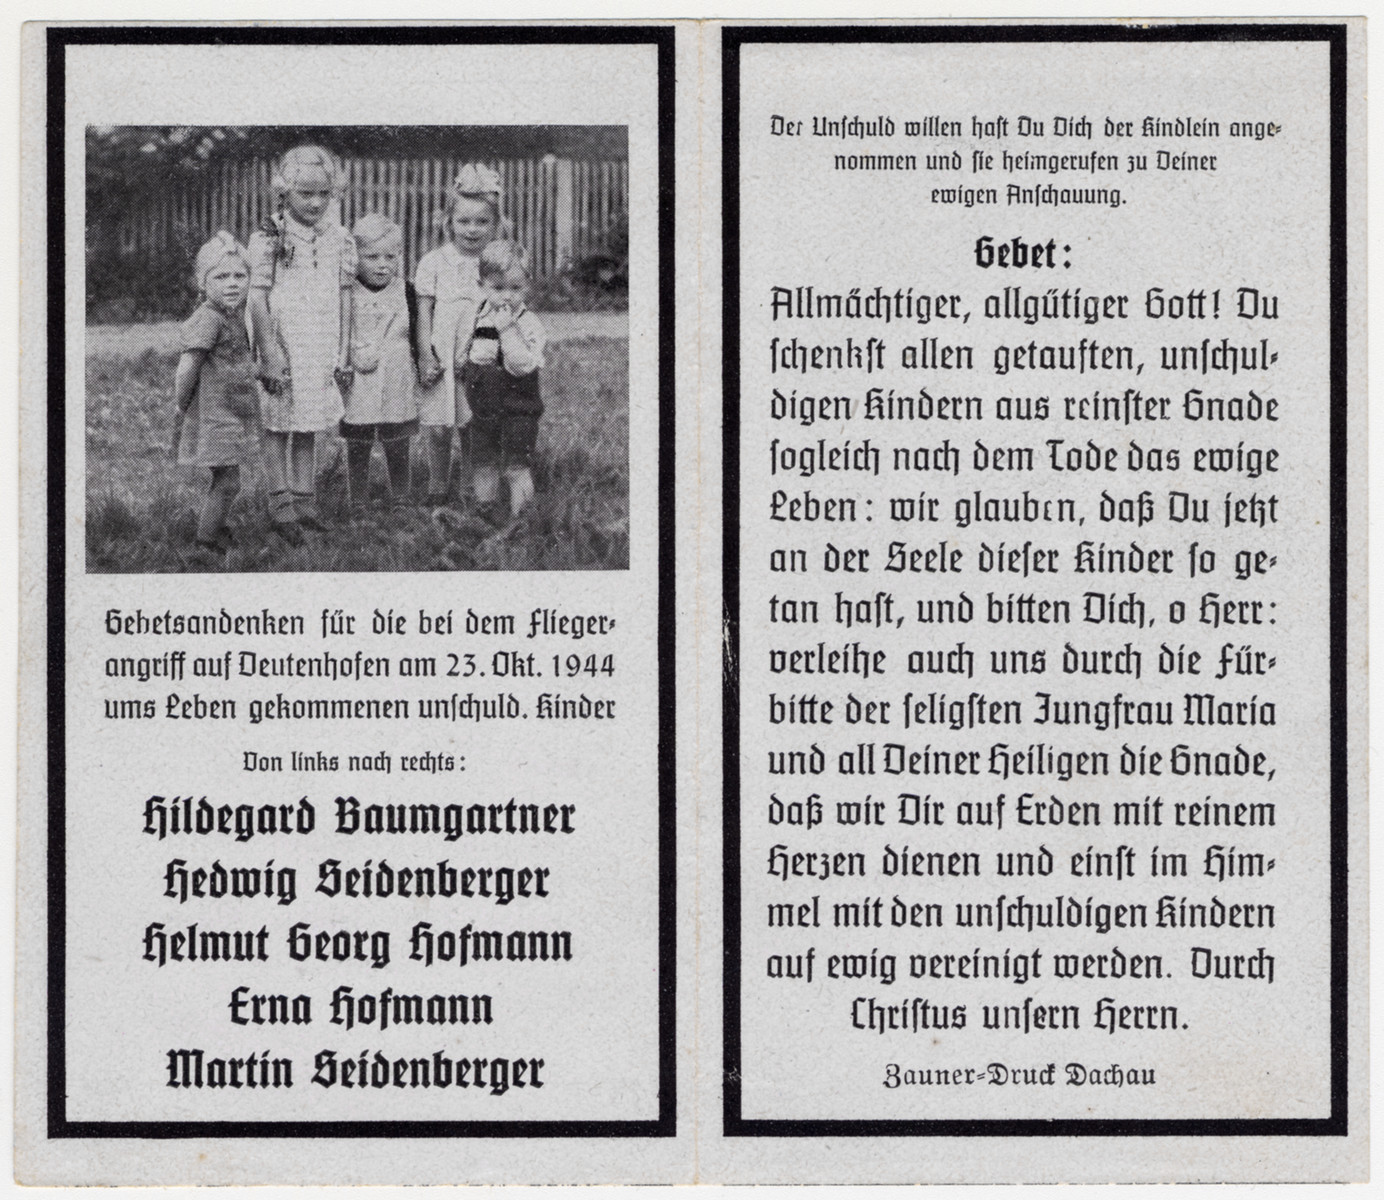 Memorial card to the memory of German children killed in an Allied bomb attack.  On the right is Martin Seidenberger, the nephew of the donor.